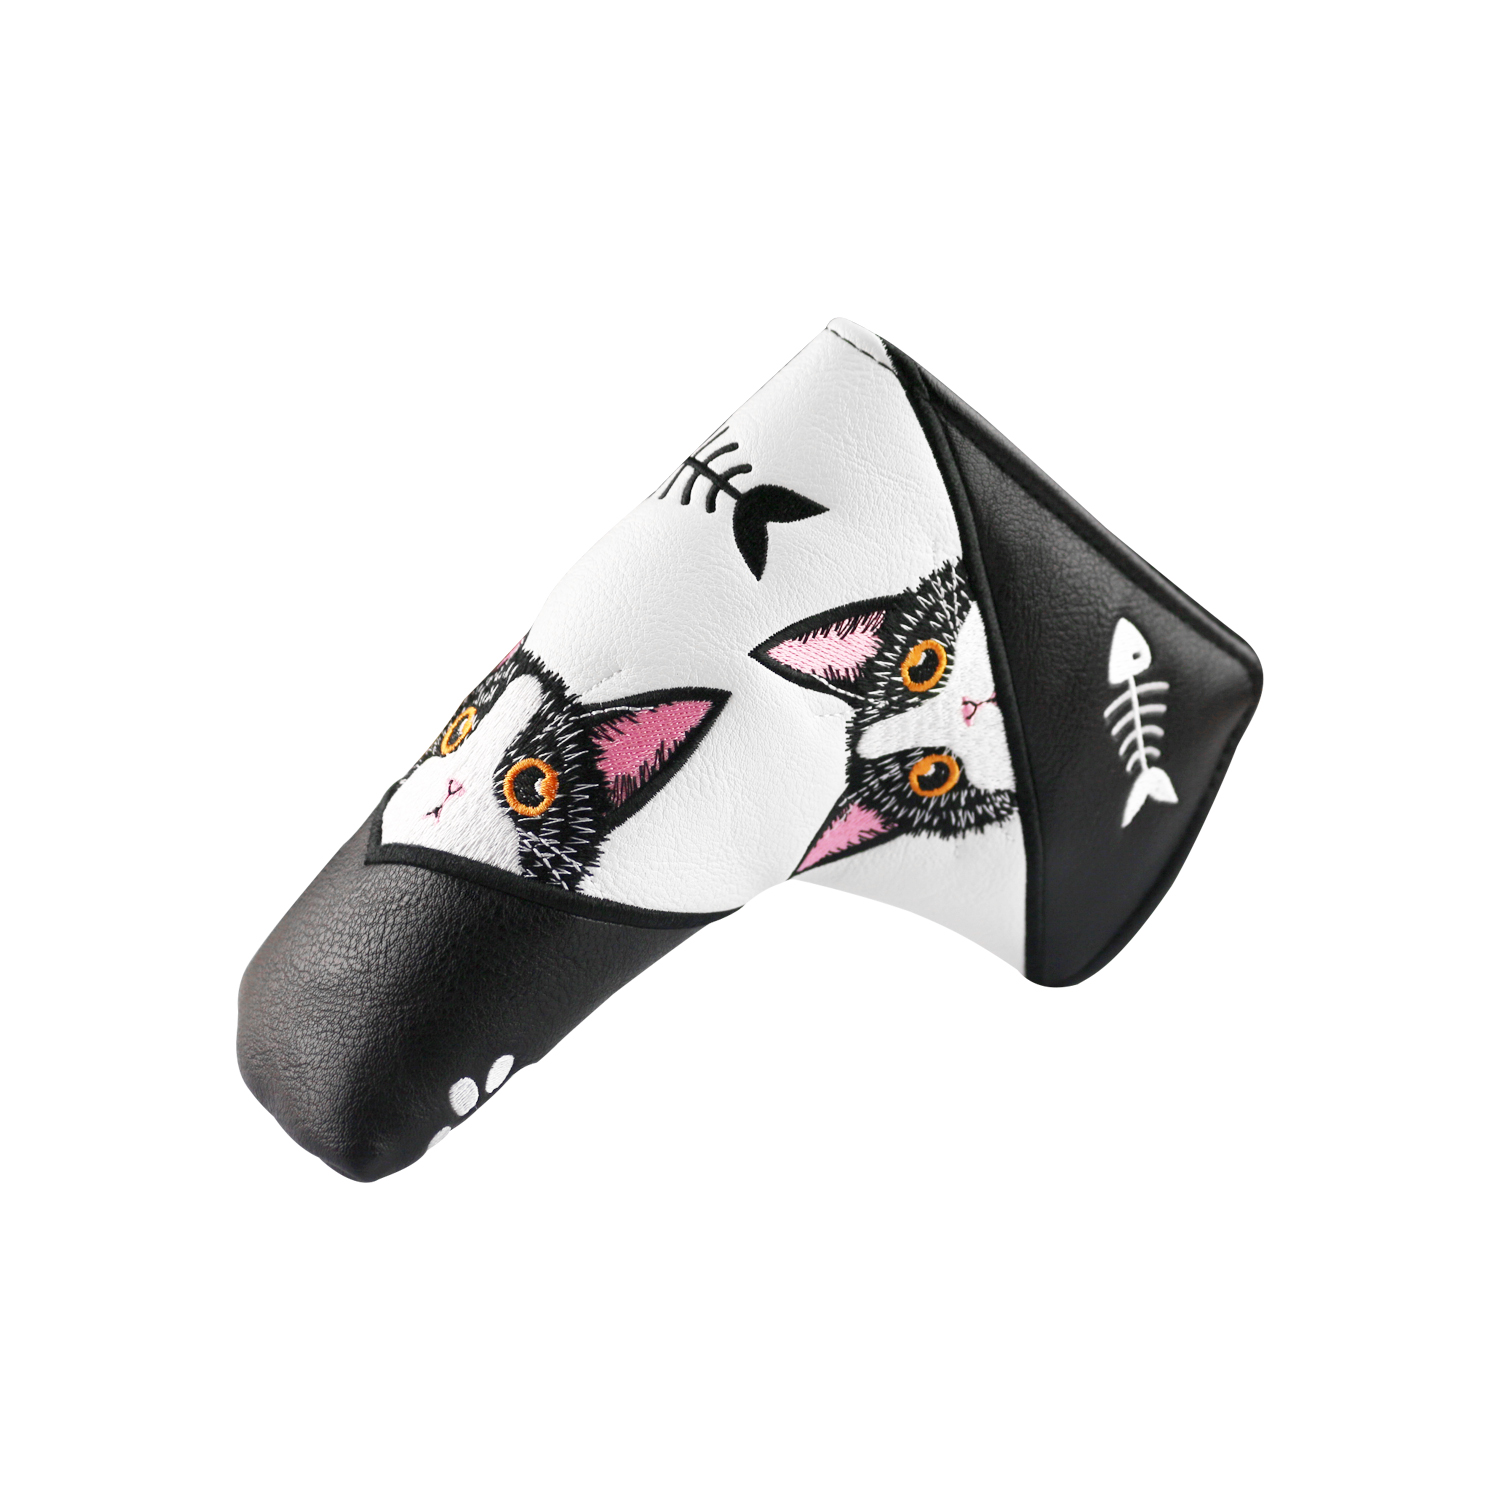 PINMEI Golf Blade Putter Covers Golf Club Headcover Embroidered Flannel Lining Soft PU Leather Magnetic Closure Golf Head Covers